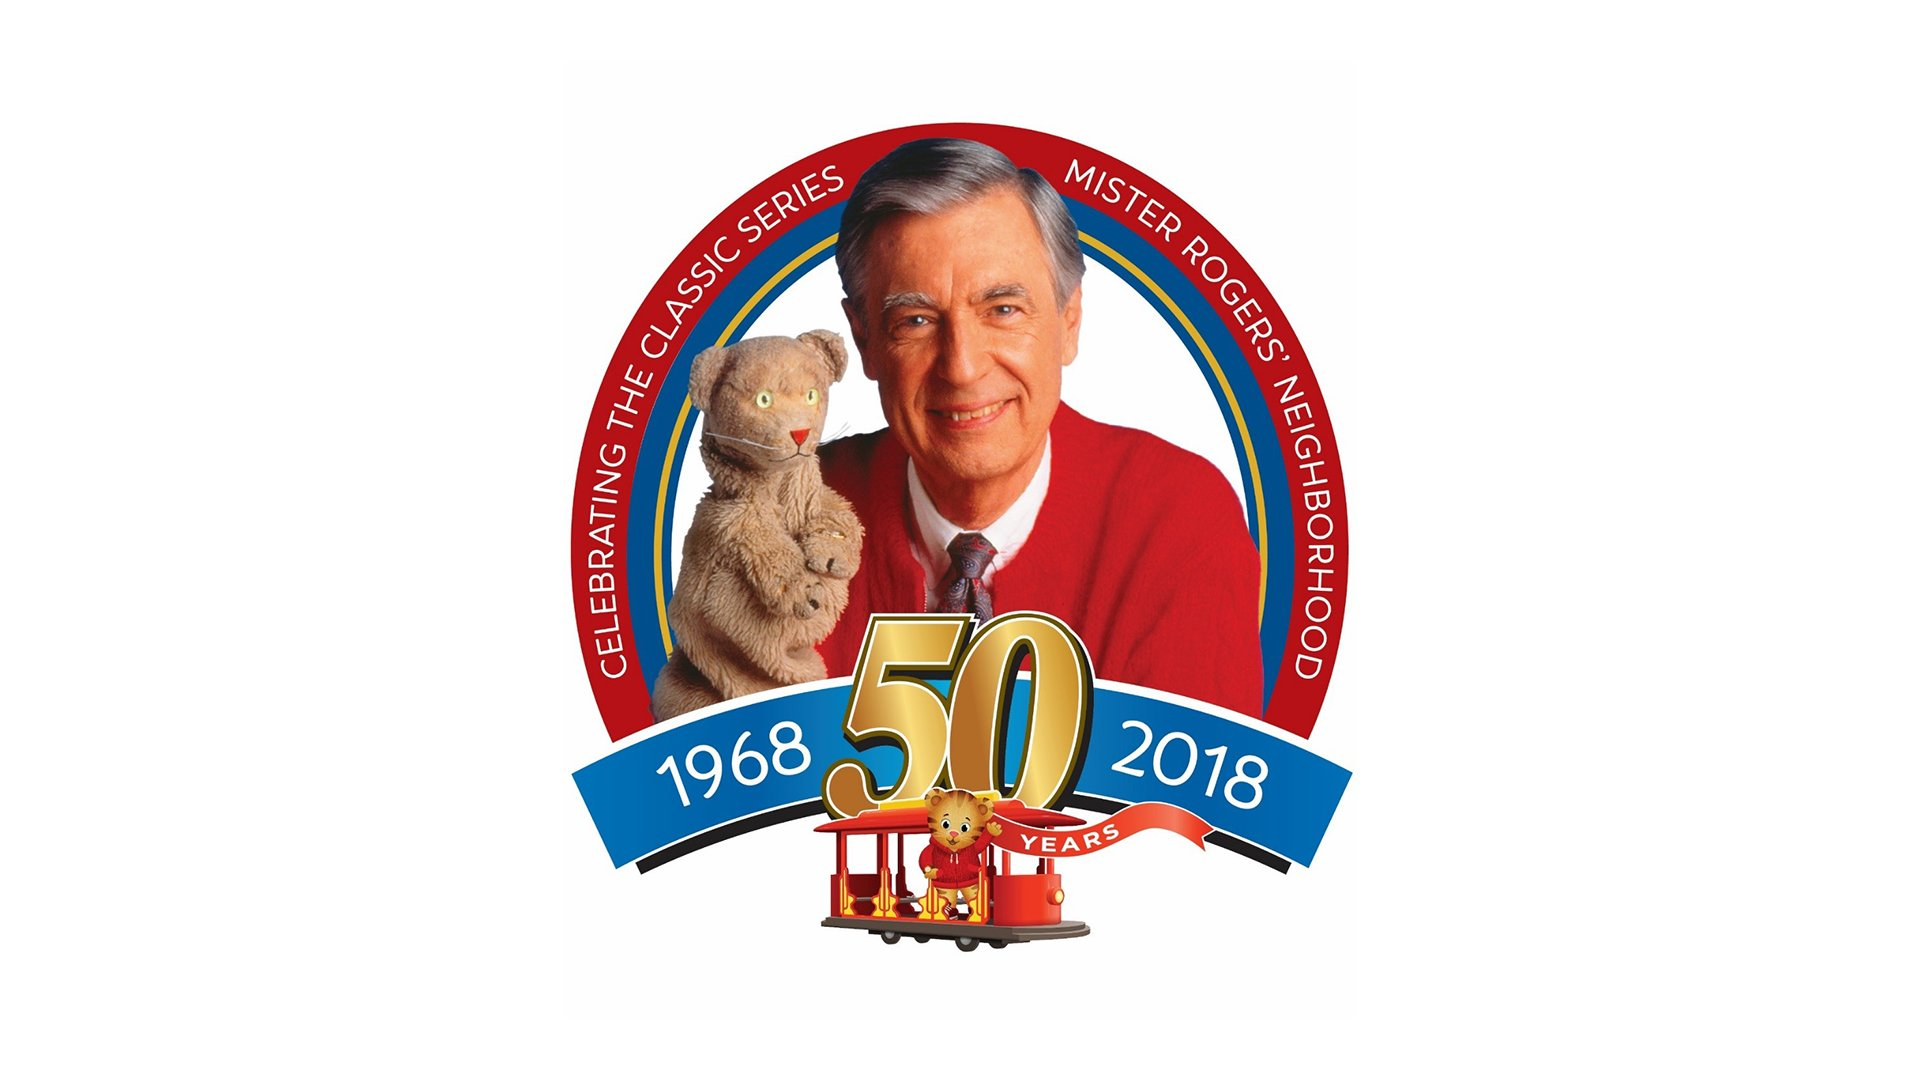 Fred Rogers Productions On Twitter Pittsburgh Neighbors Close Out Our 50th Anniversary Year With A Special Retrospective Of Mister Rogers Neighborhood From Wqed Thursday 12 27 Misterrogers50 Https T Co Tuwp6v5zvb Https T Co Ammnlxpo8u